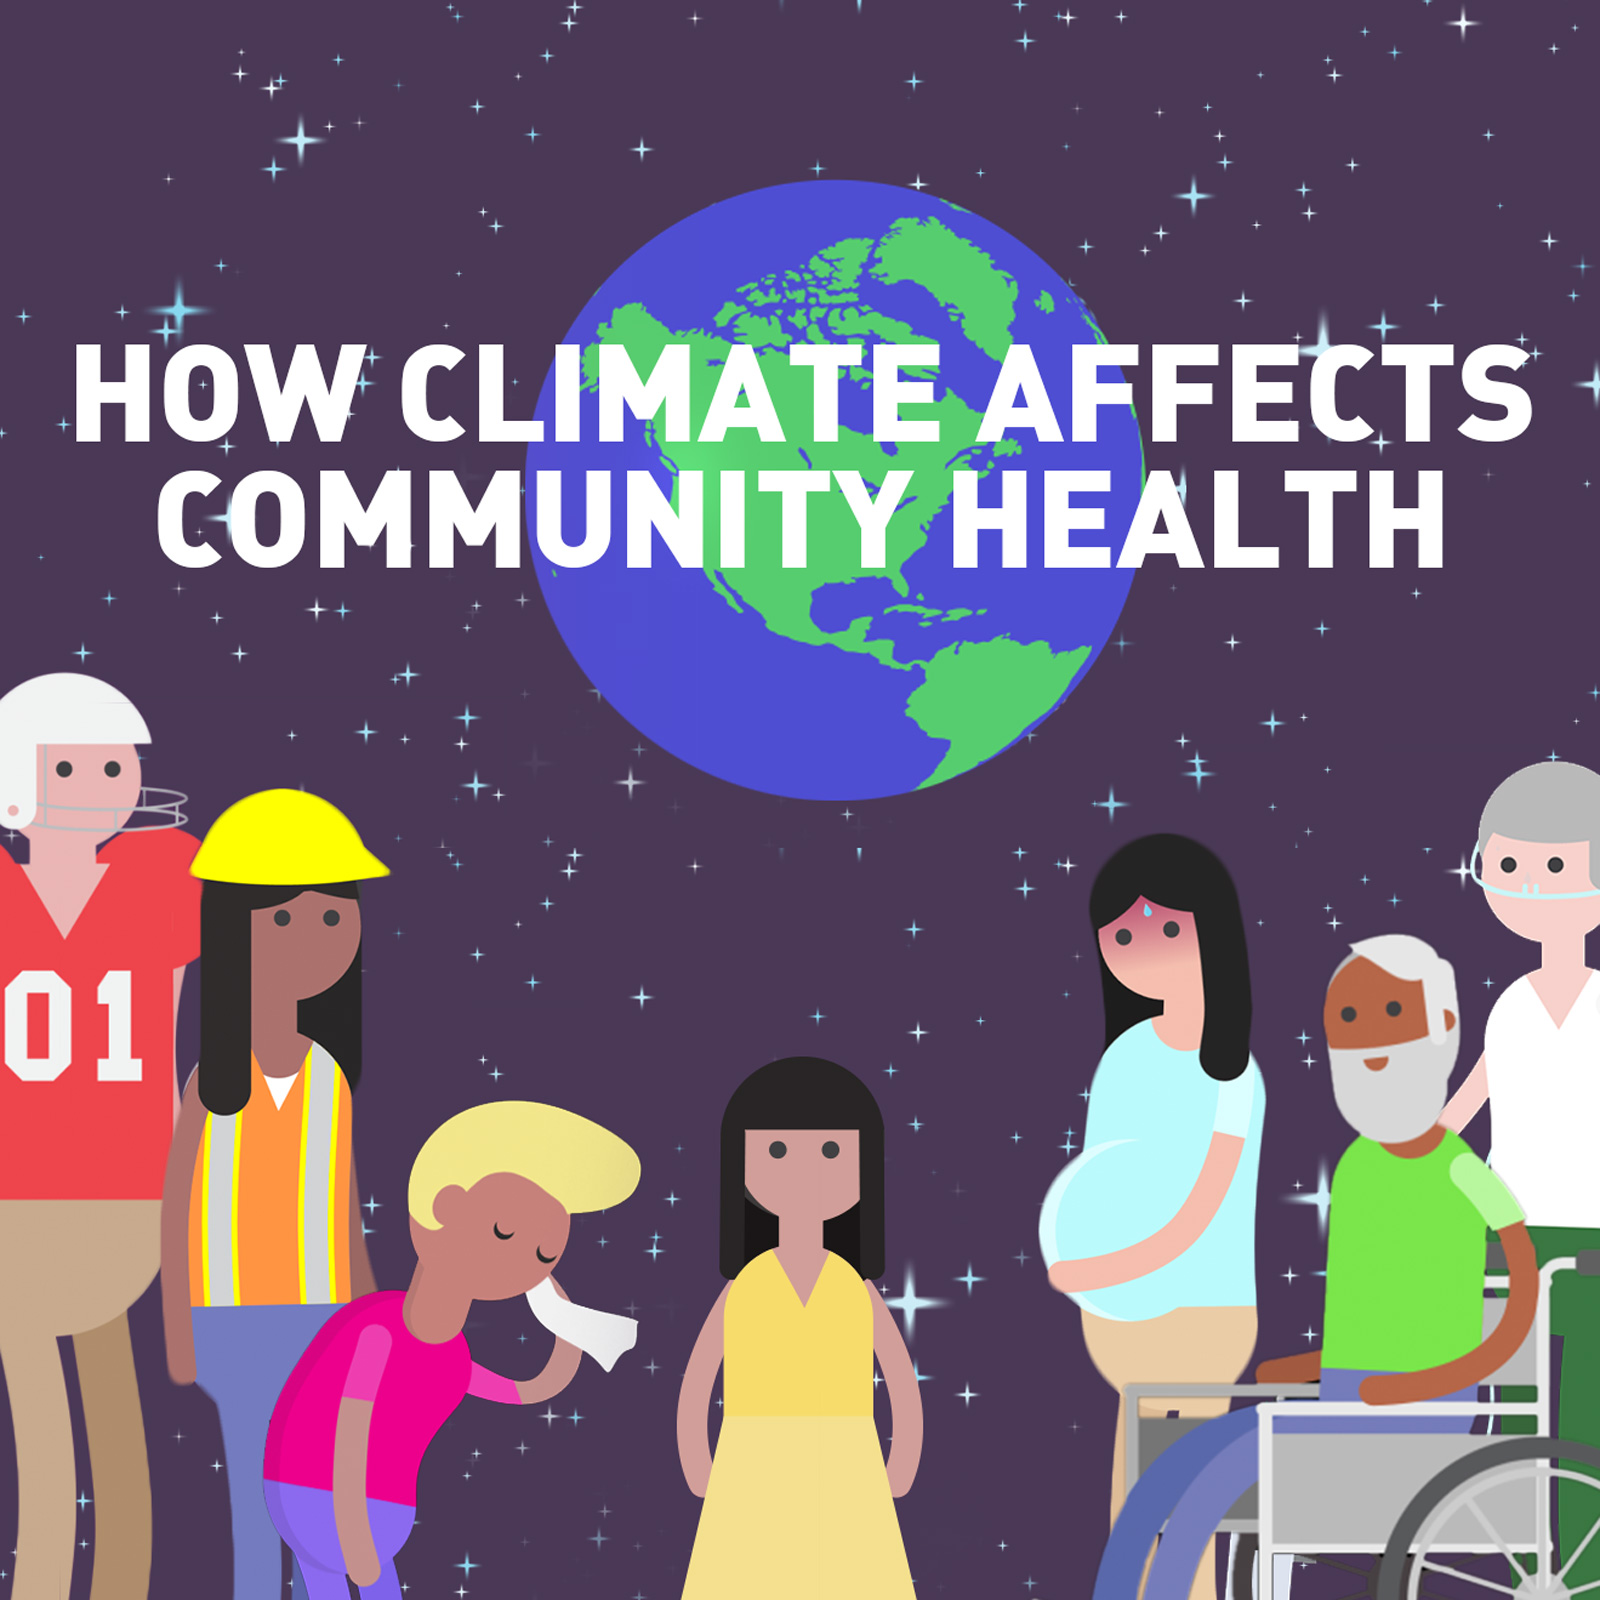 CDC Climate and Health Video